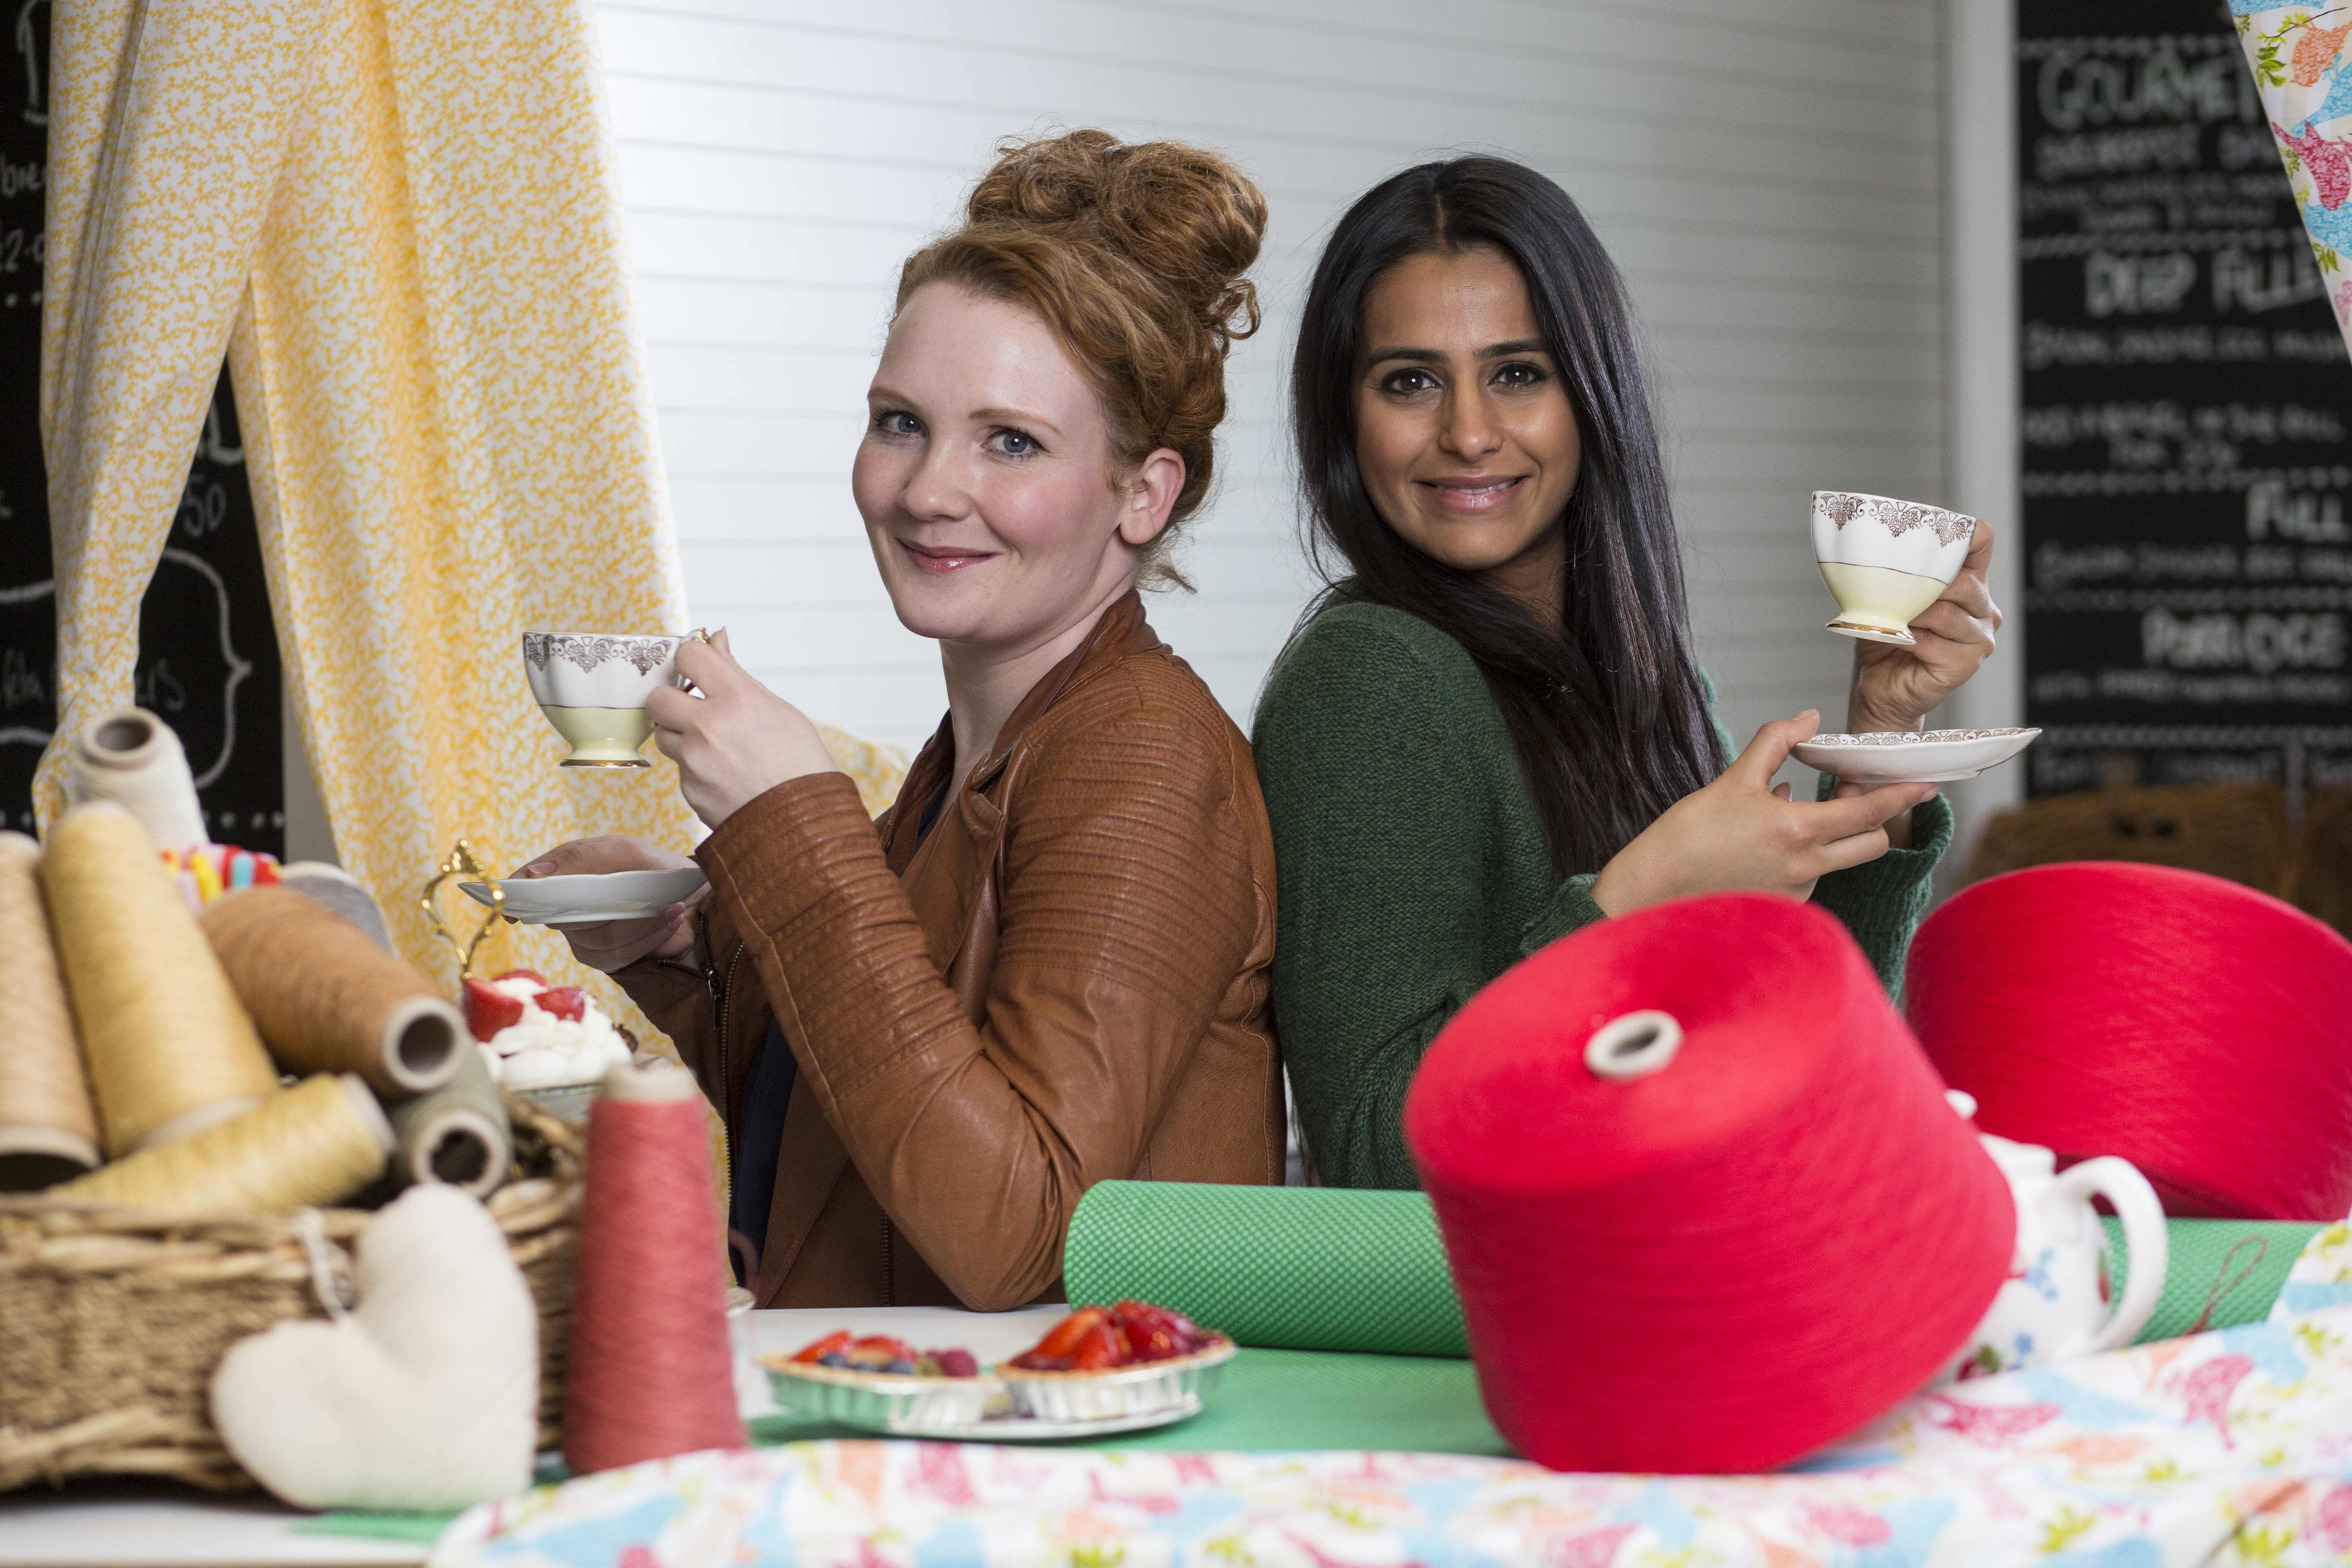 Coronation Street stars Jennie McAlpine and Sair Khan who will be making a special appearance at a pop-up Textiles Teashop on Saturday 20 June from 12pm – 1pm at Manchester Arndale Market